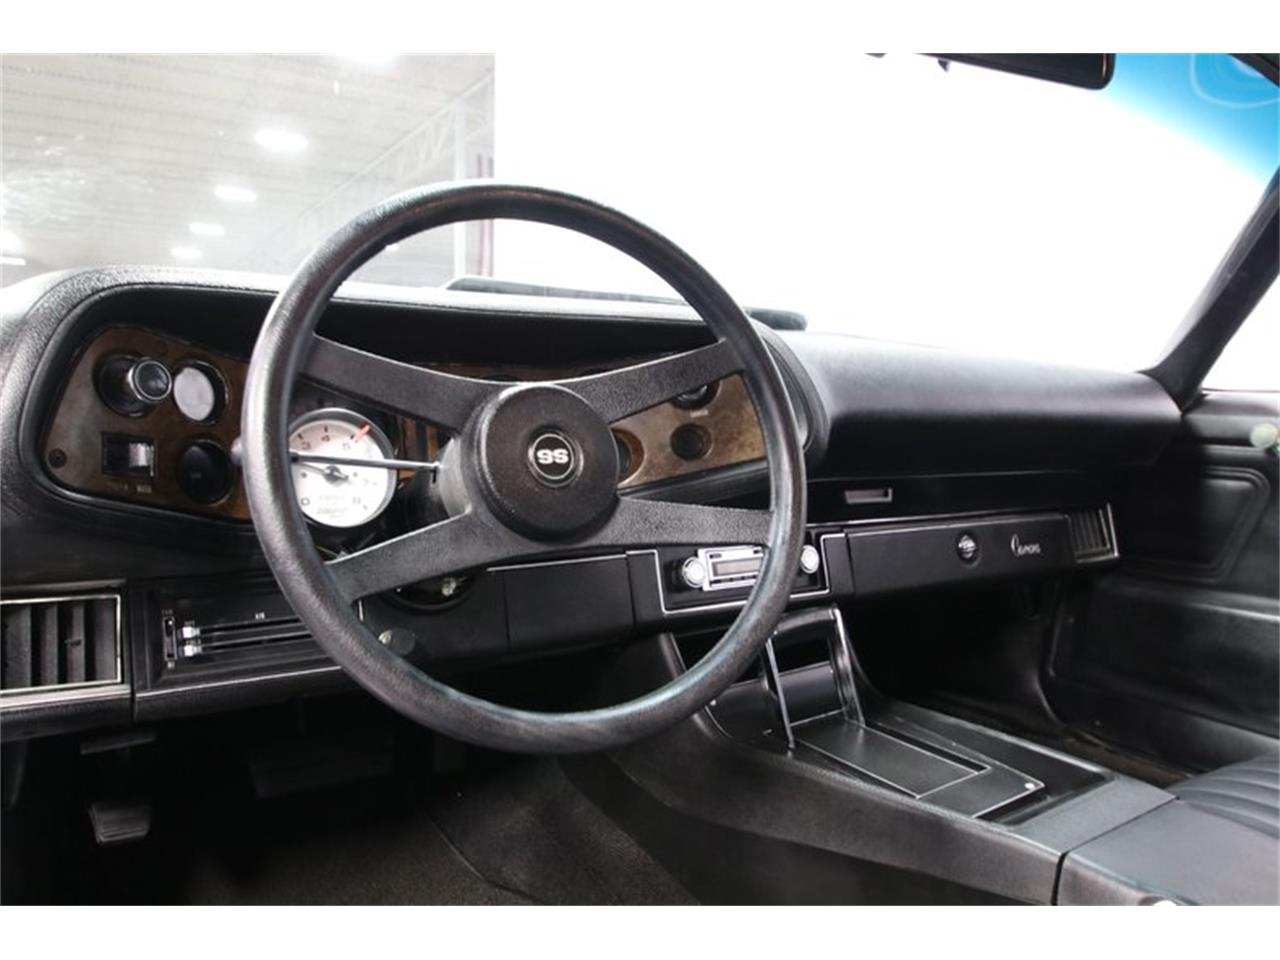 Large Picture of Classic '70 Camaro located in North Carolina Offered by Streetside Classics - Charlotte - QRKC